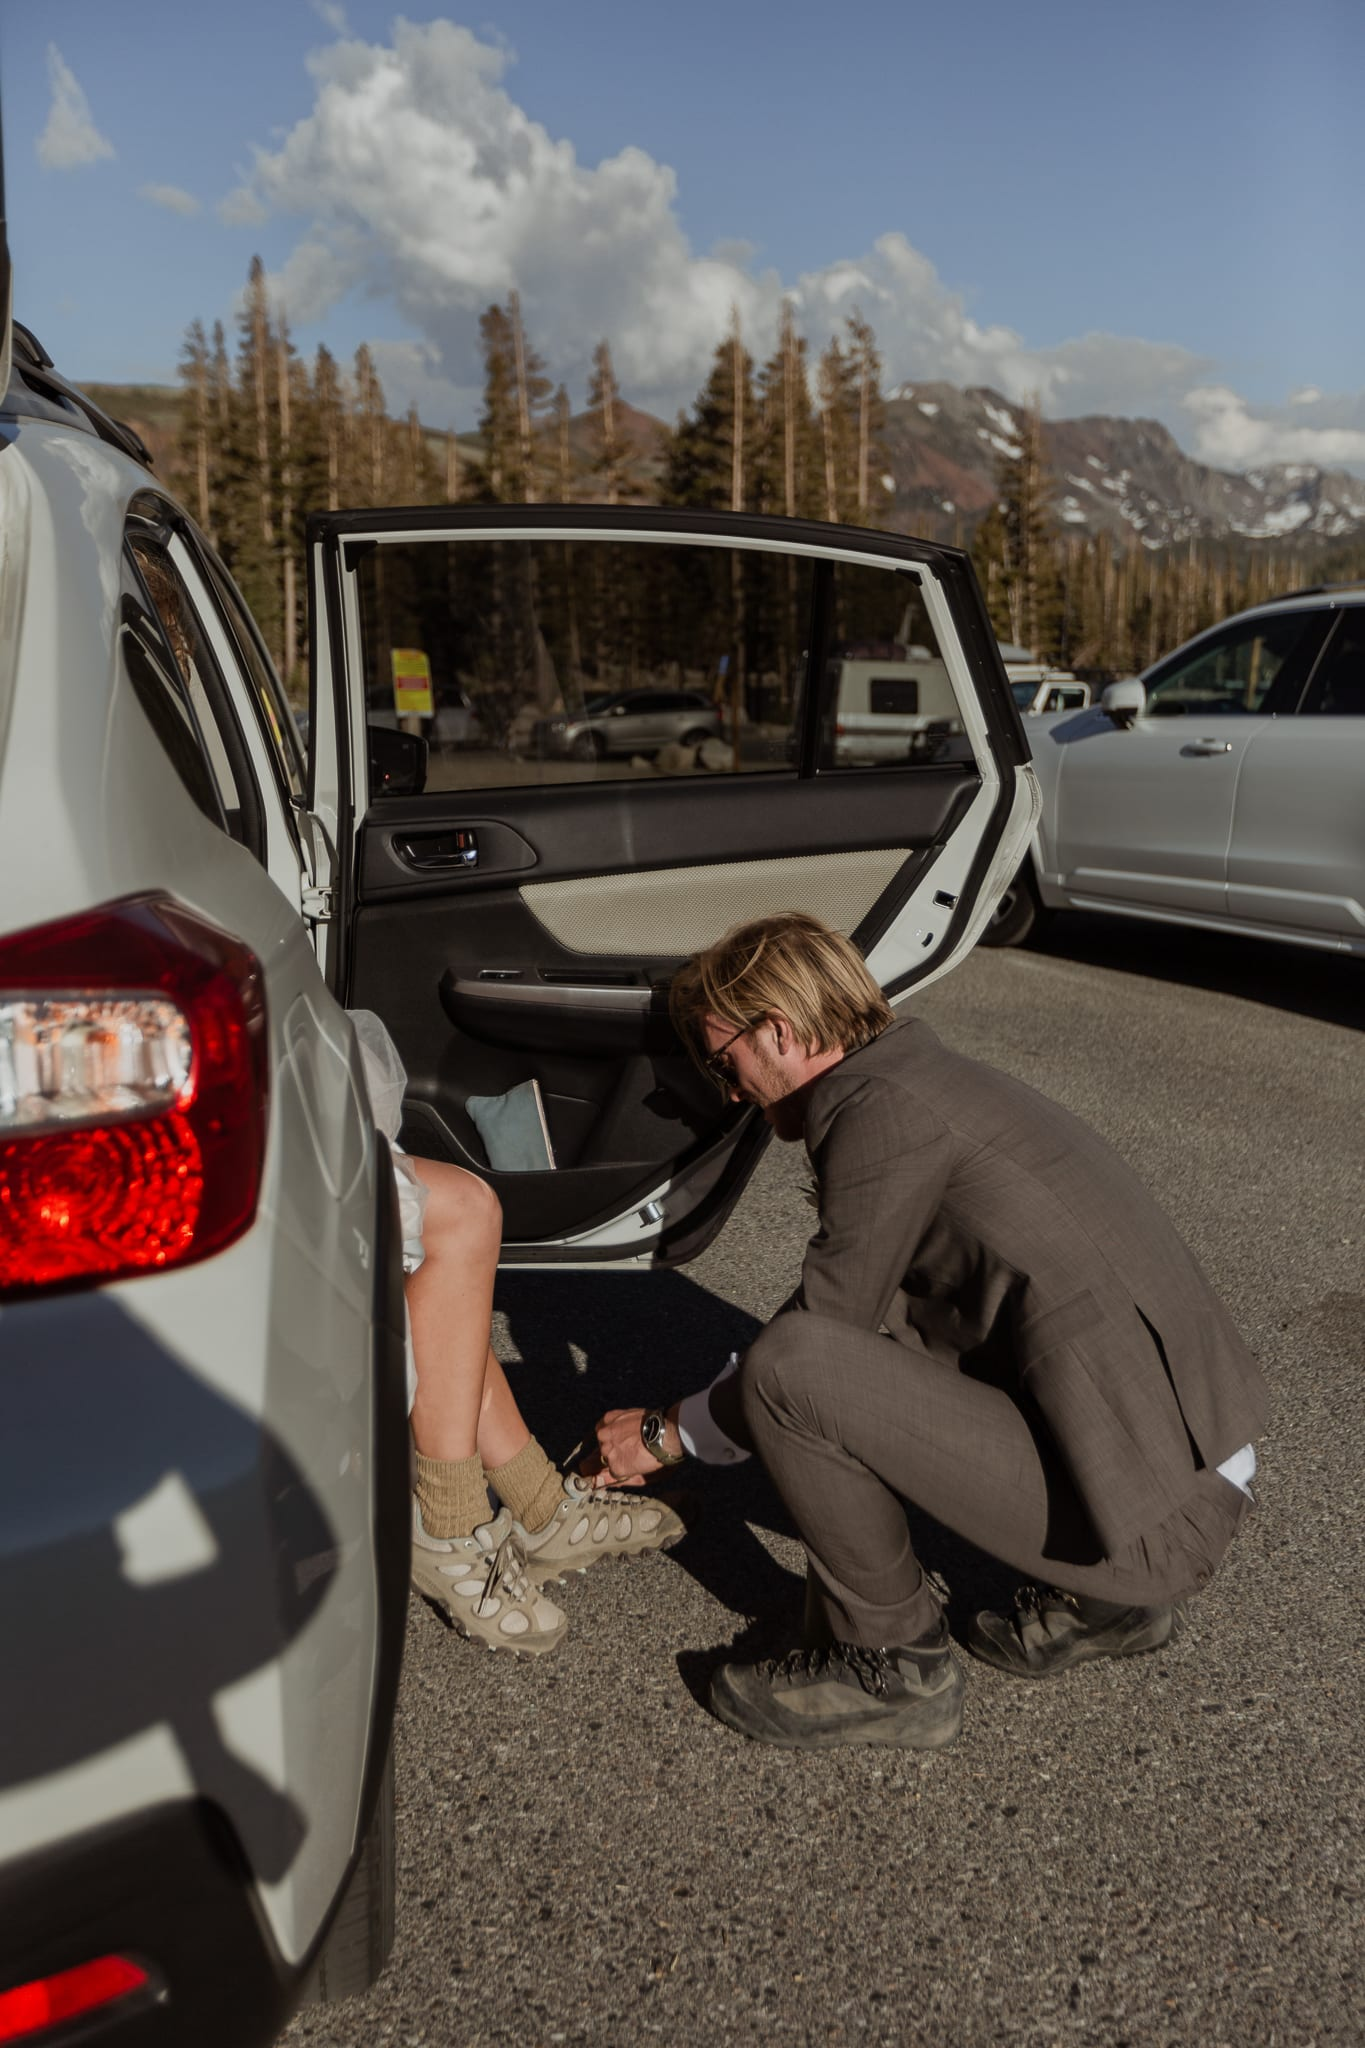 Tyler helps Haylee by tying her hiking boots while she sits with her elopement wedding dress on. They are getting ready to hike up to McLeod Lake.